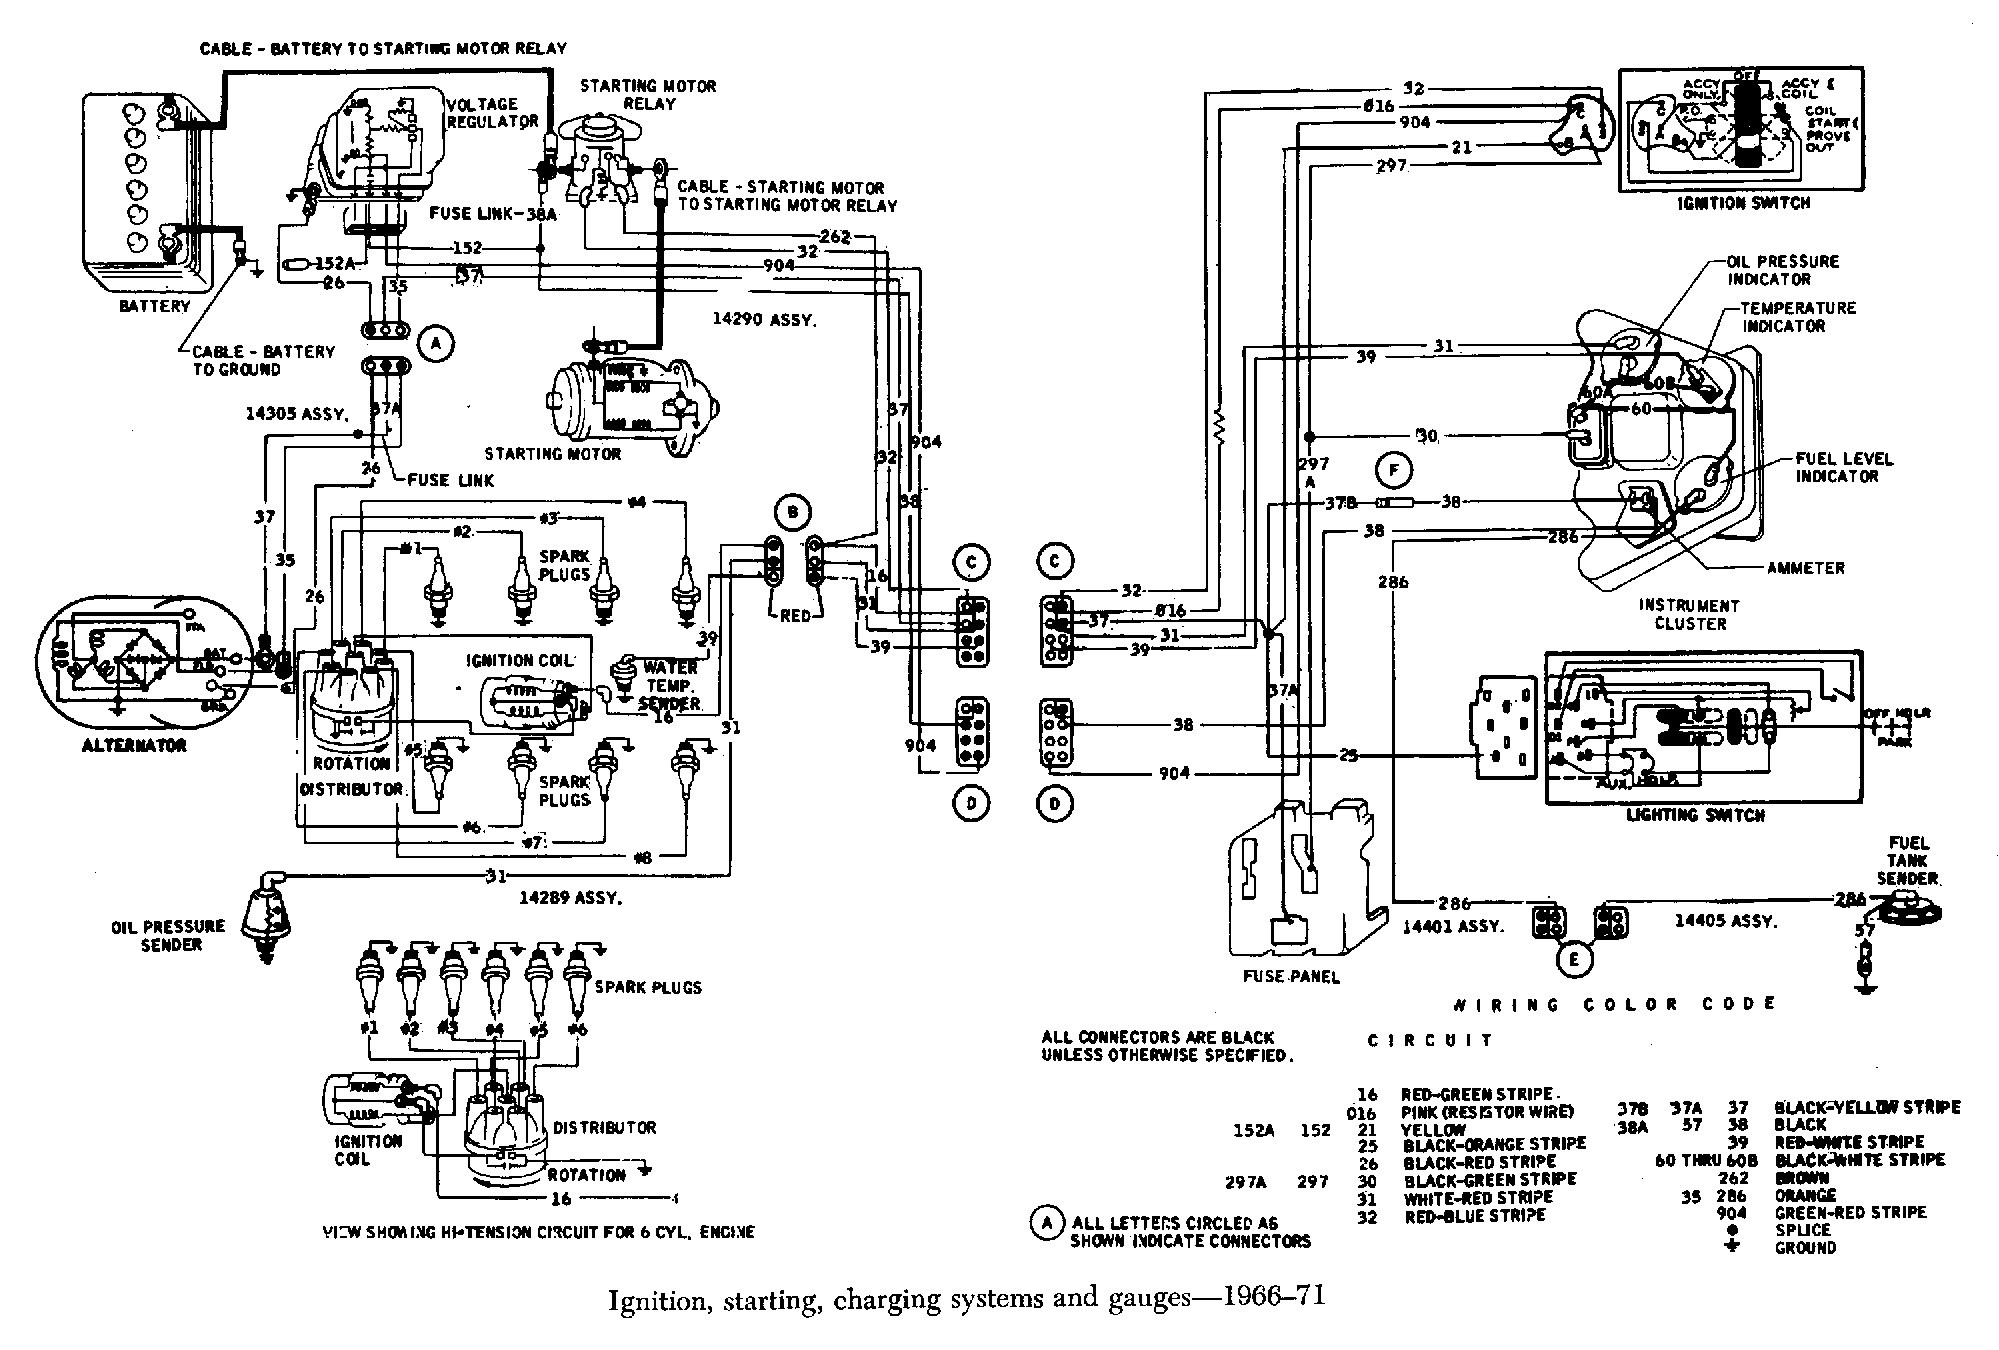 Chevy 350 Ignition Coil Wiring Diagram